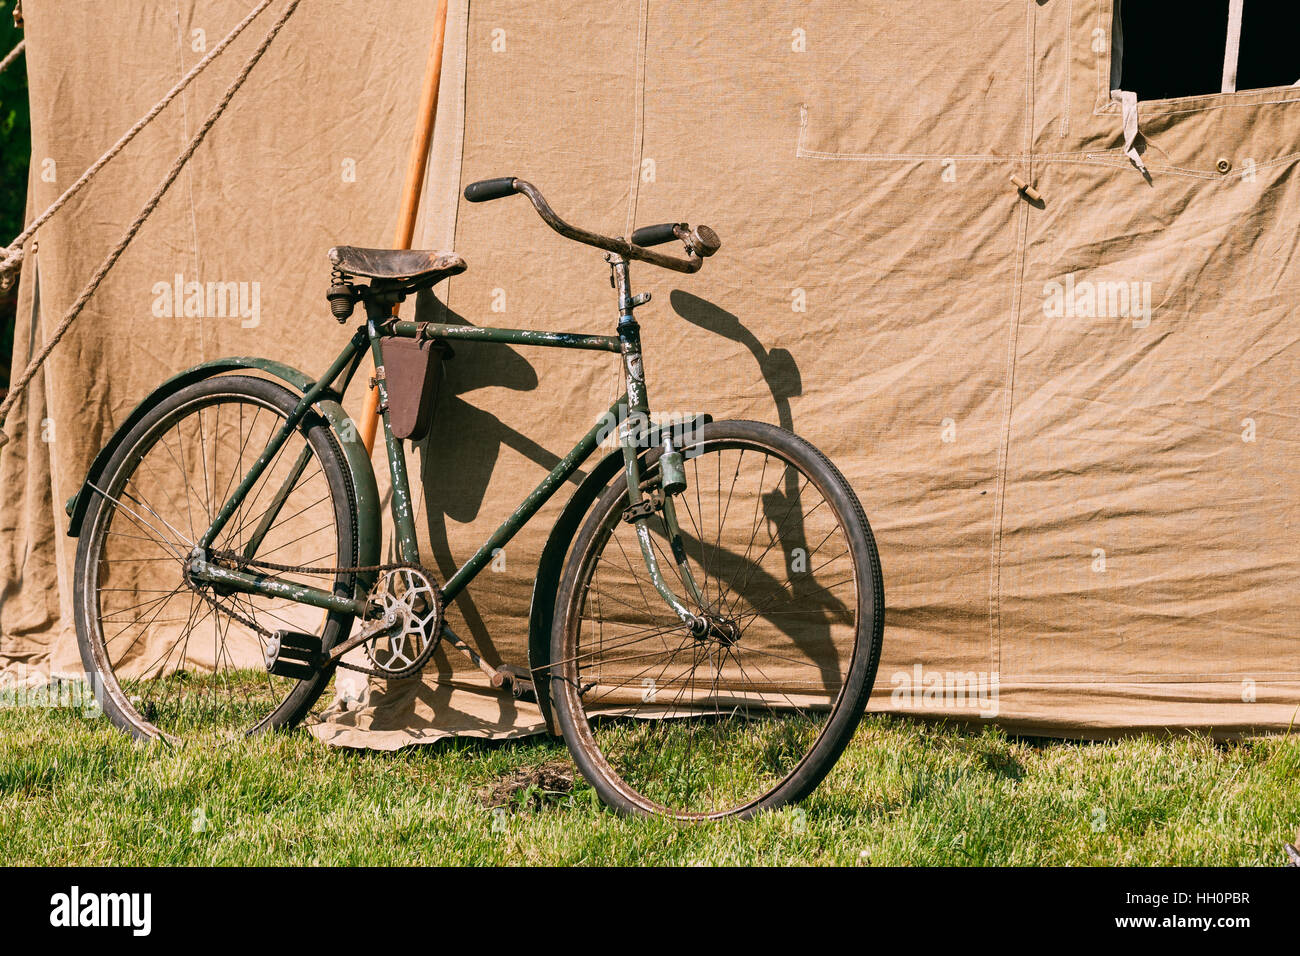 The Old Rarity Bicycle Parked Next To The Large Soviet Military Canvas Khaki Tent On Green Grass In Sunny Summer - Stock Image